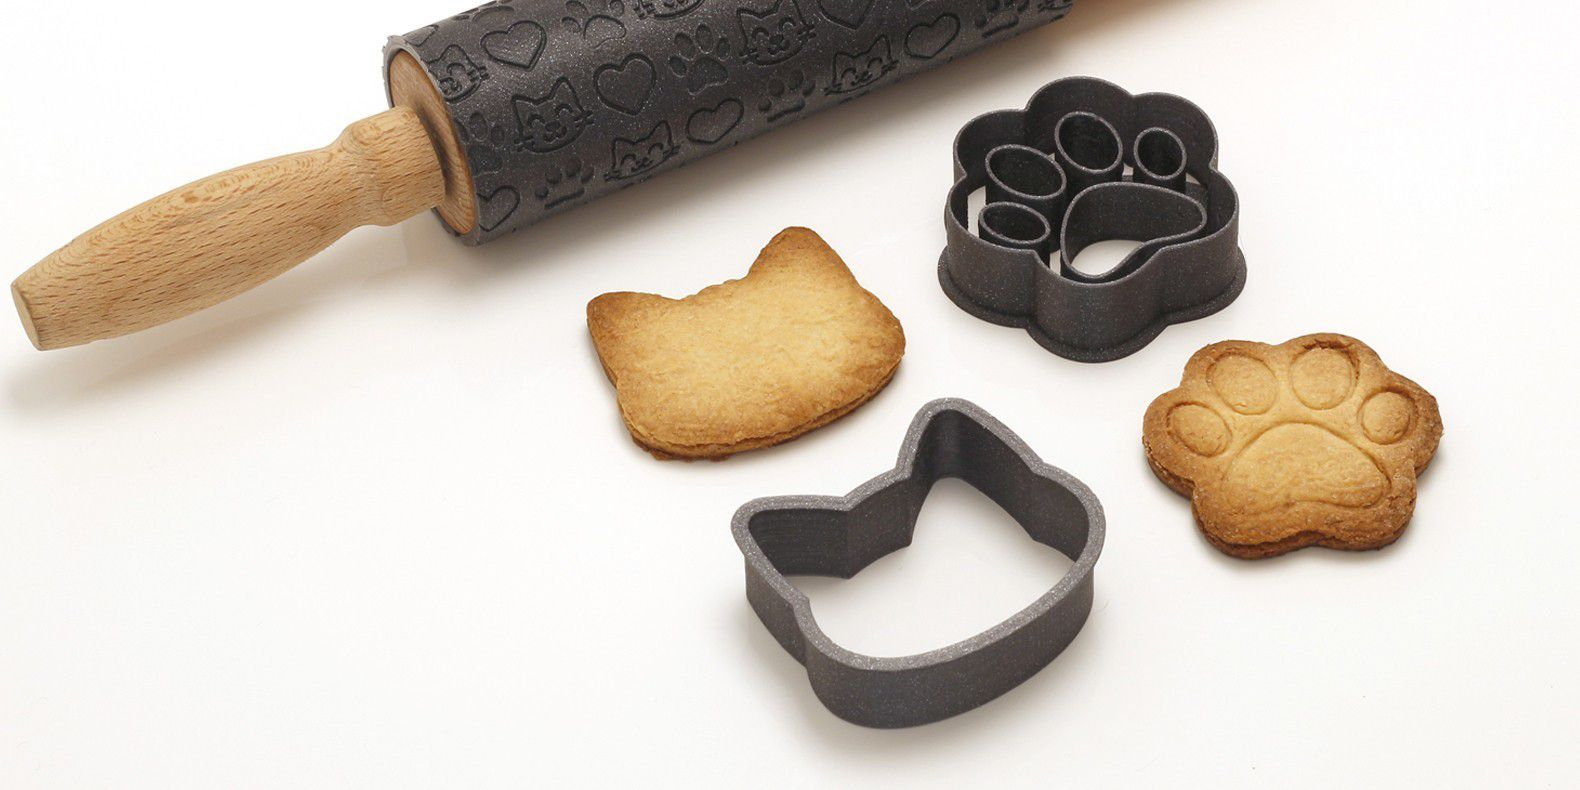 Here is a selection of the best cookie cutters 3D models to make with a 3D printer